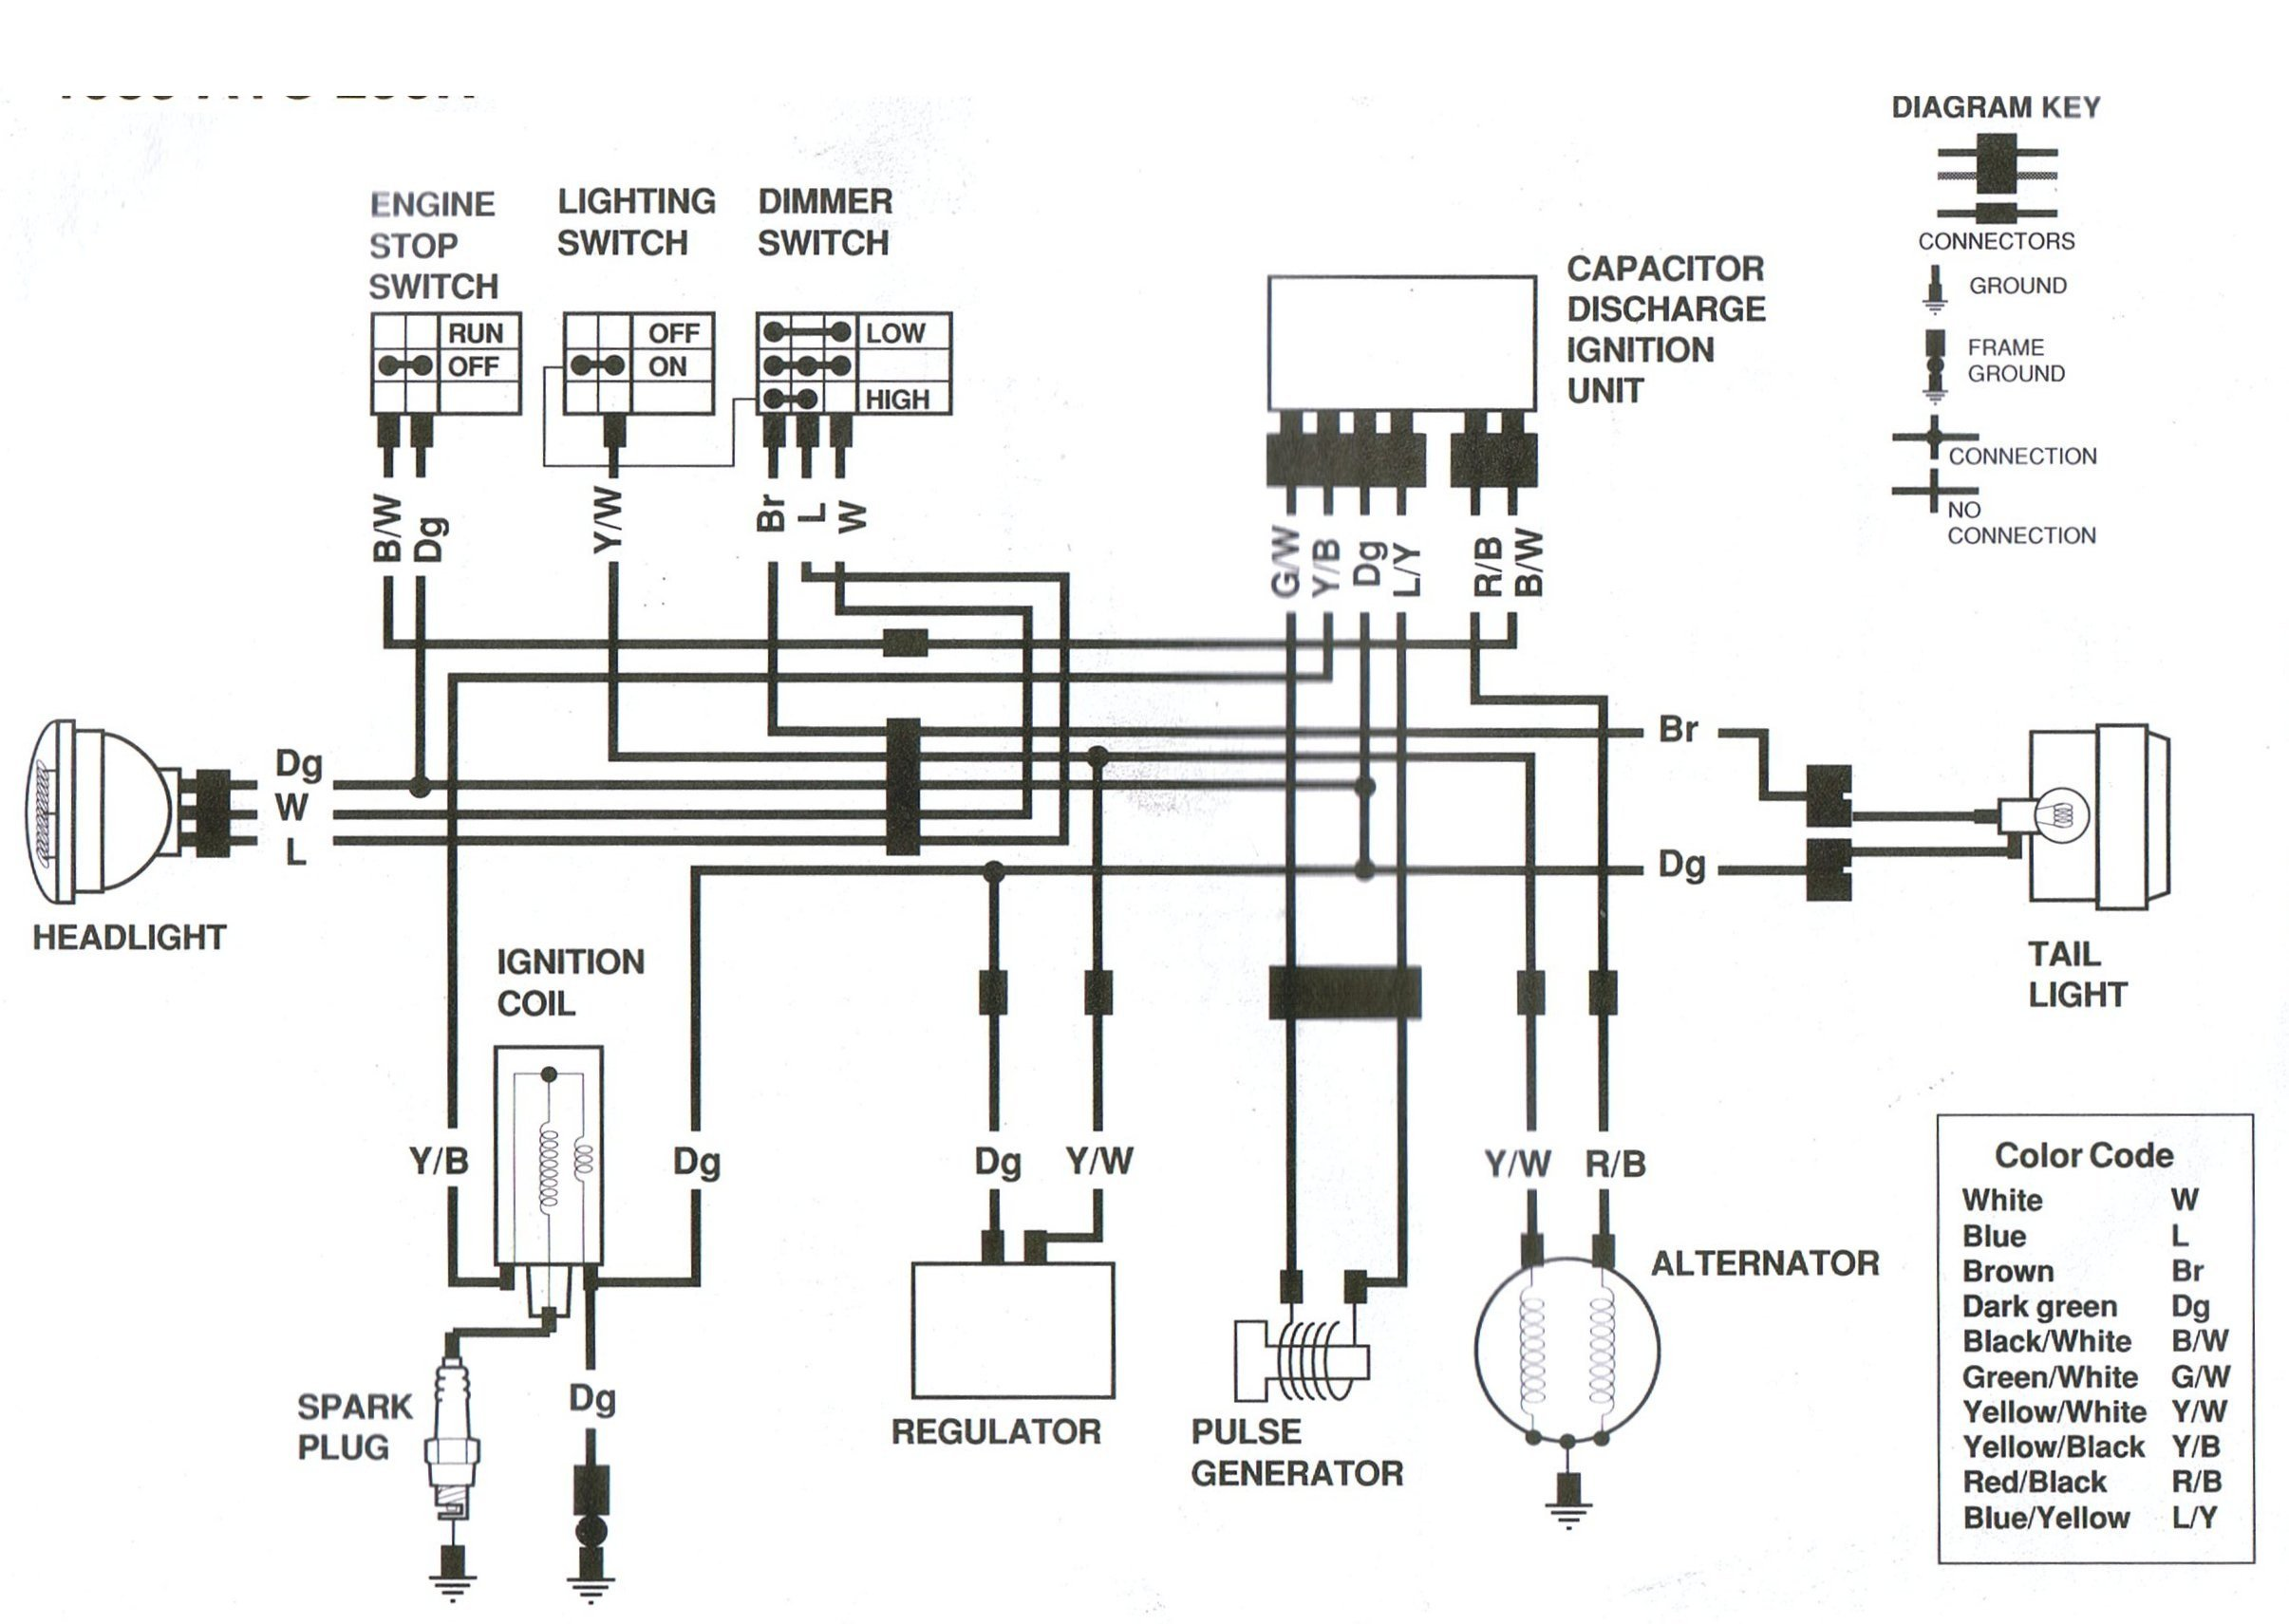 1992 accord wiring diagram